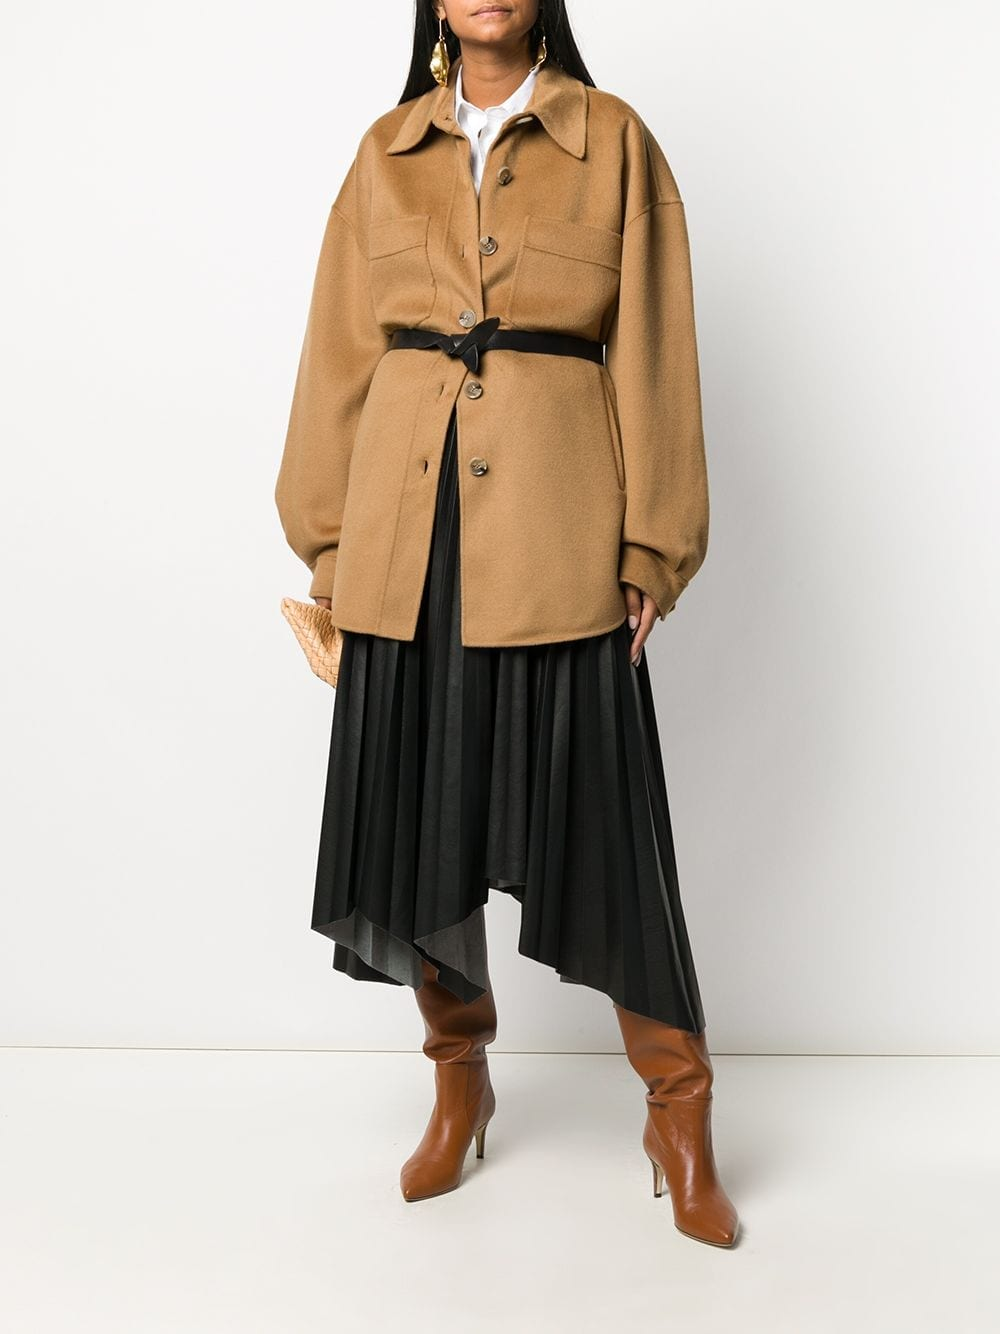 Farfetch: Up To 50% Off Designer Sale + Extra 20% OFF